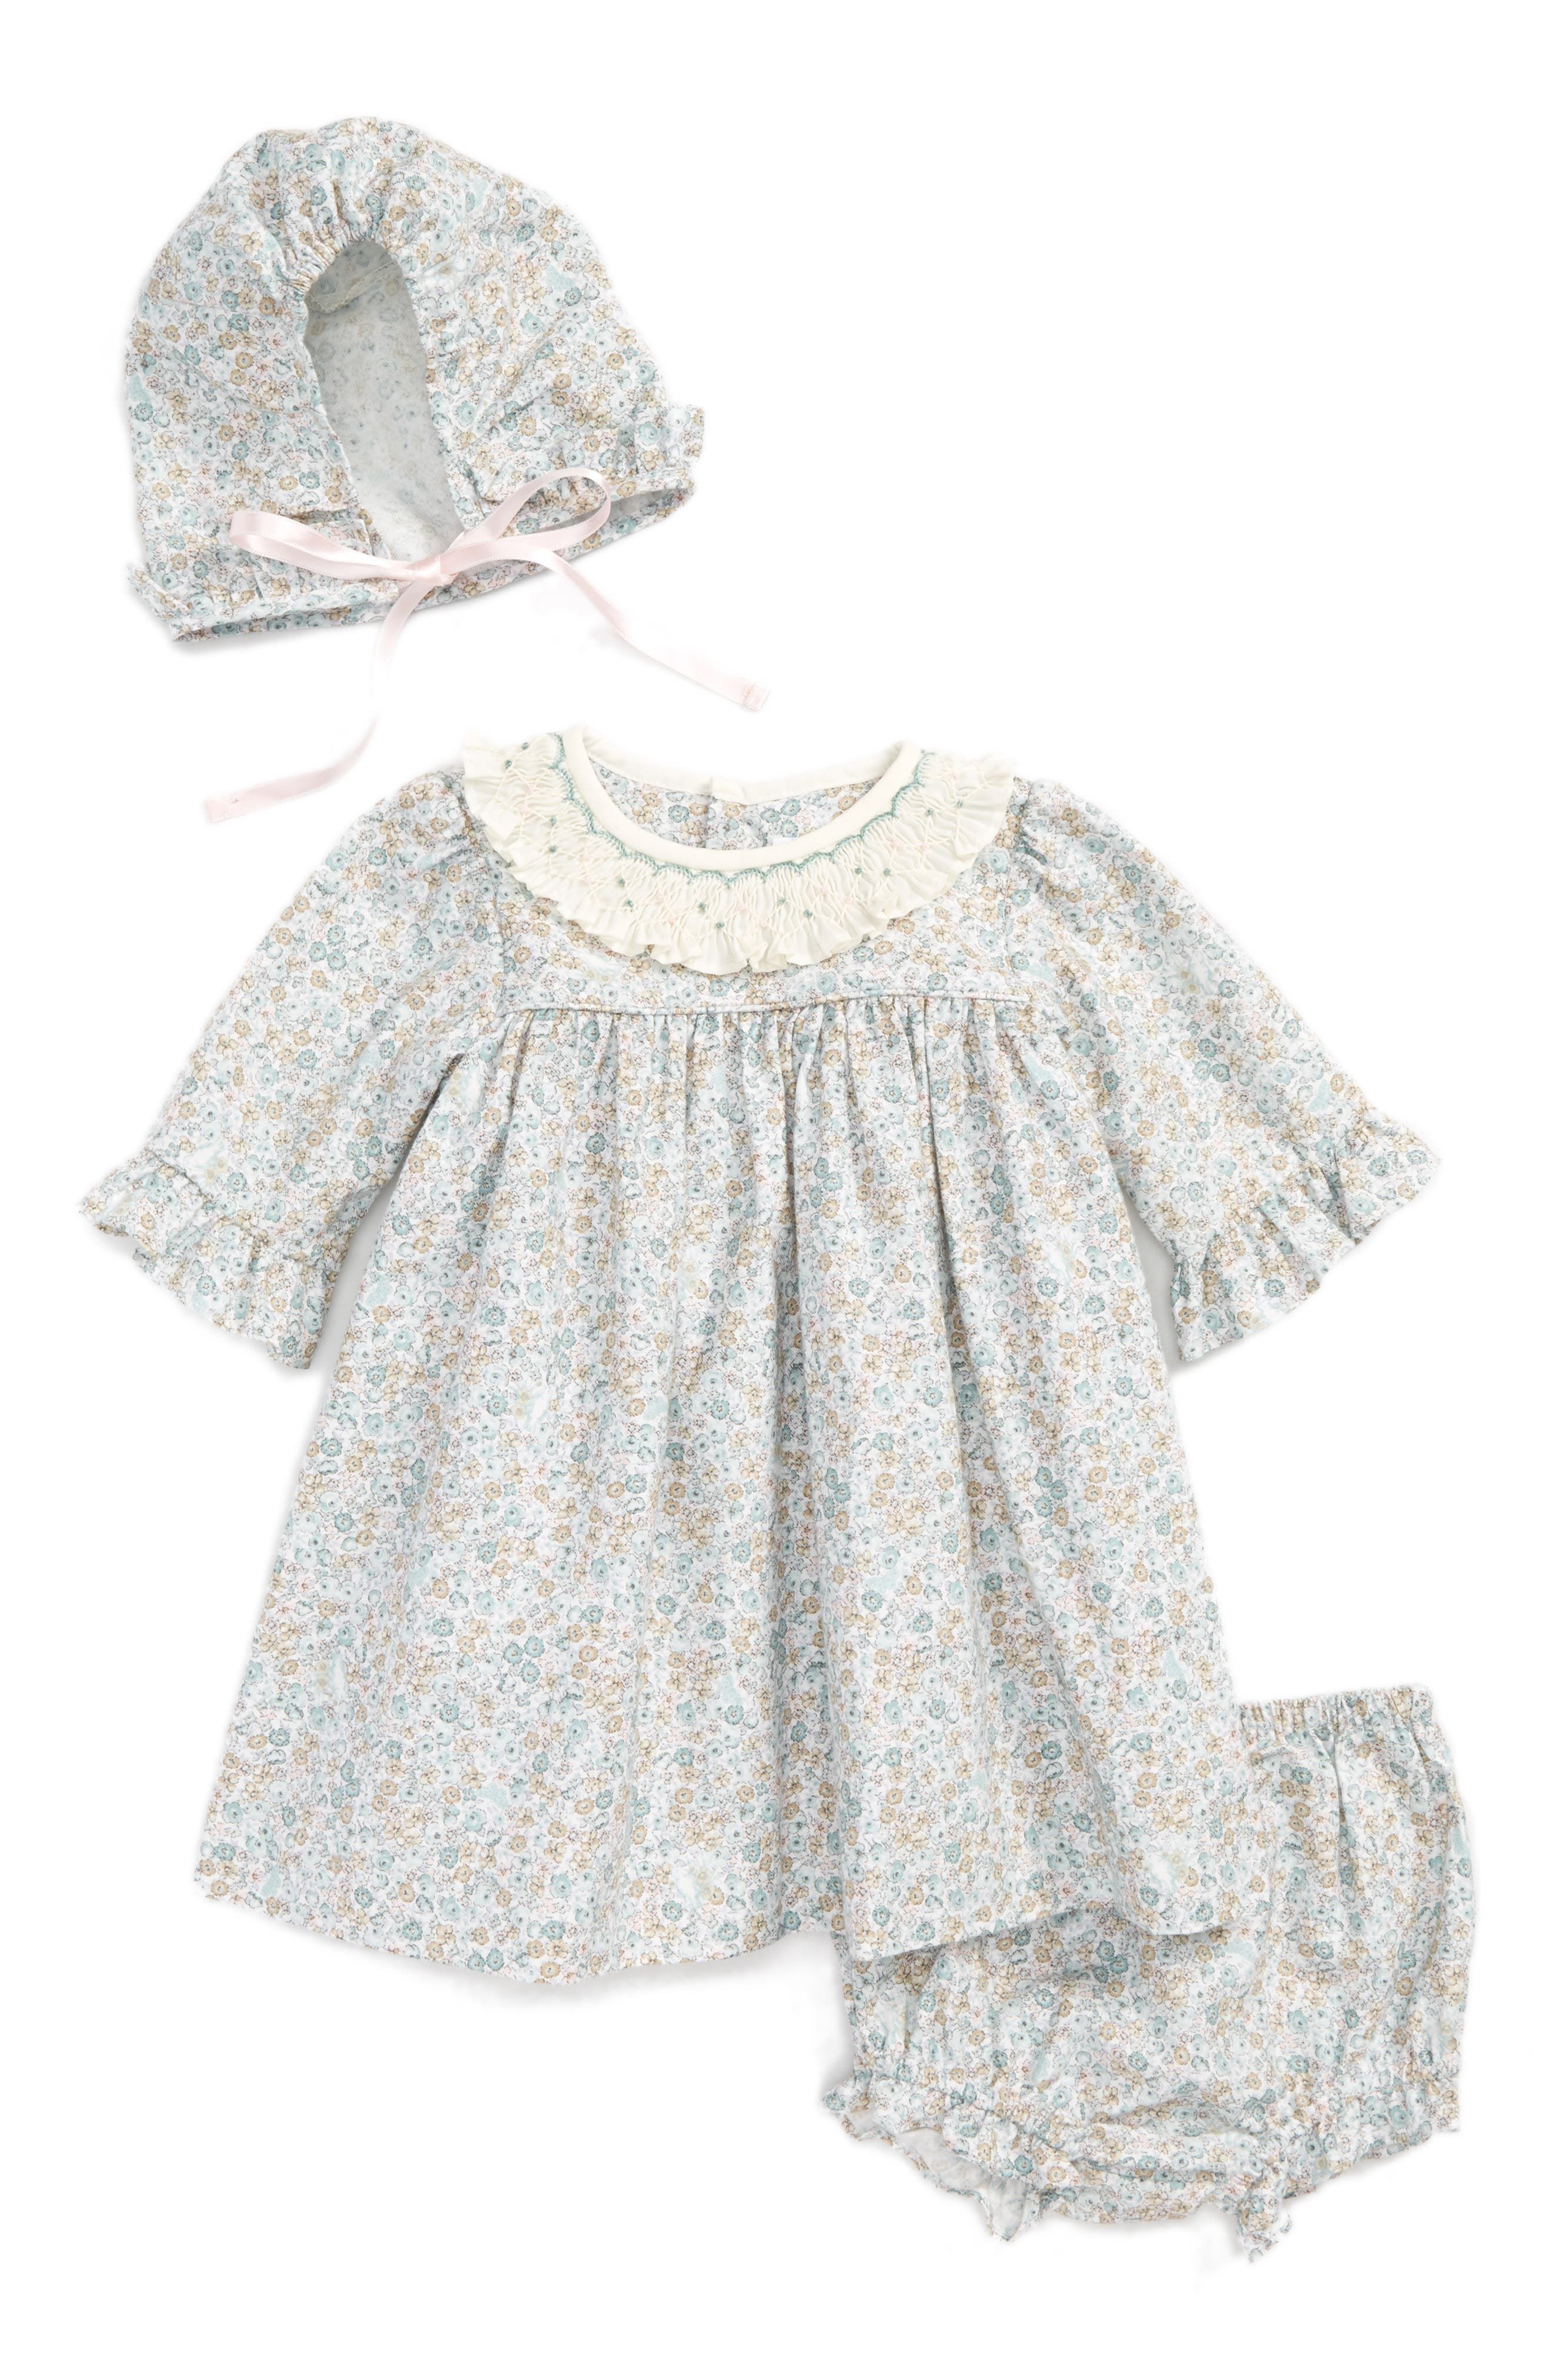 Luli & Me Dress, Hat & Bloomers Set (Baby Girls)